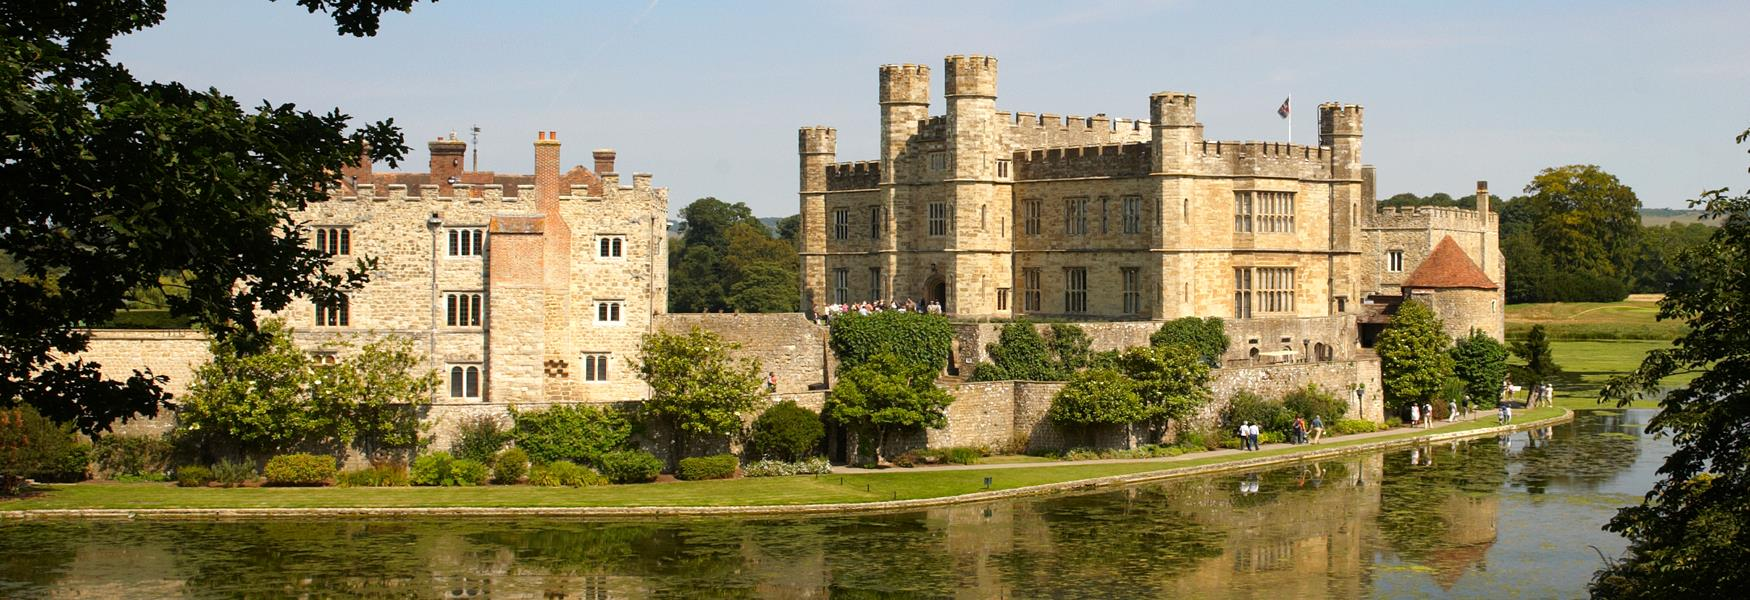 Leeds Castle -  a wonderful day out